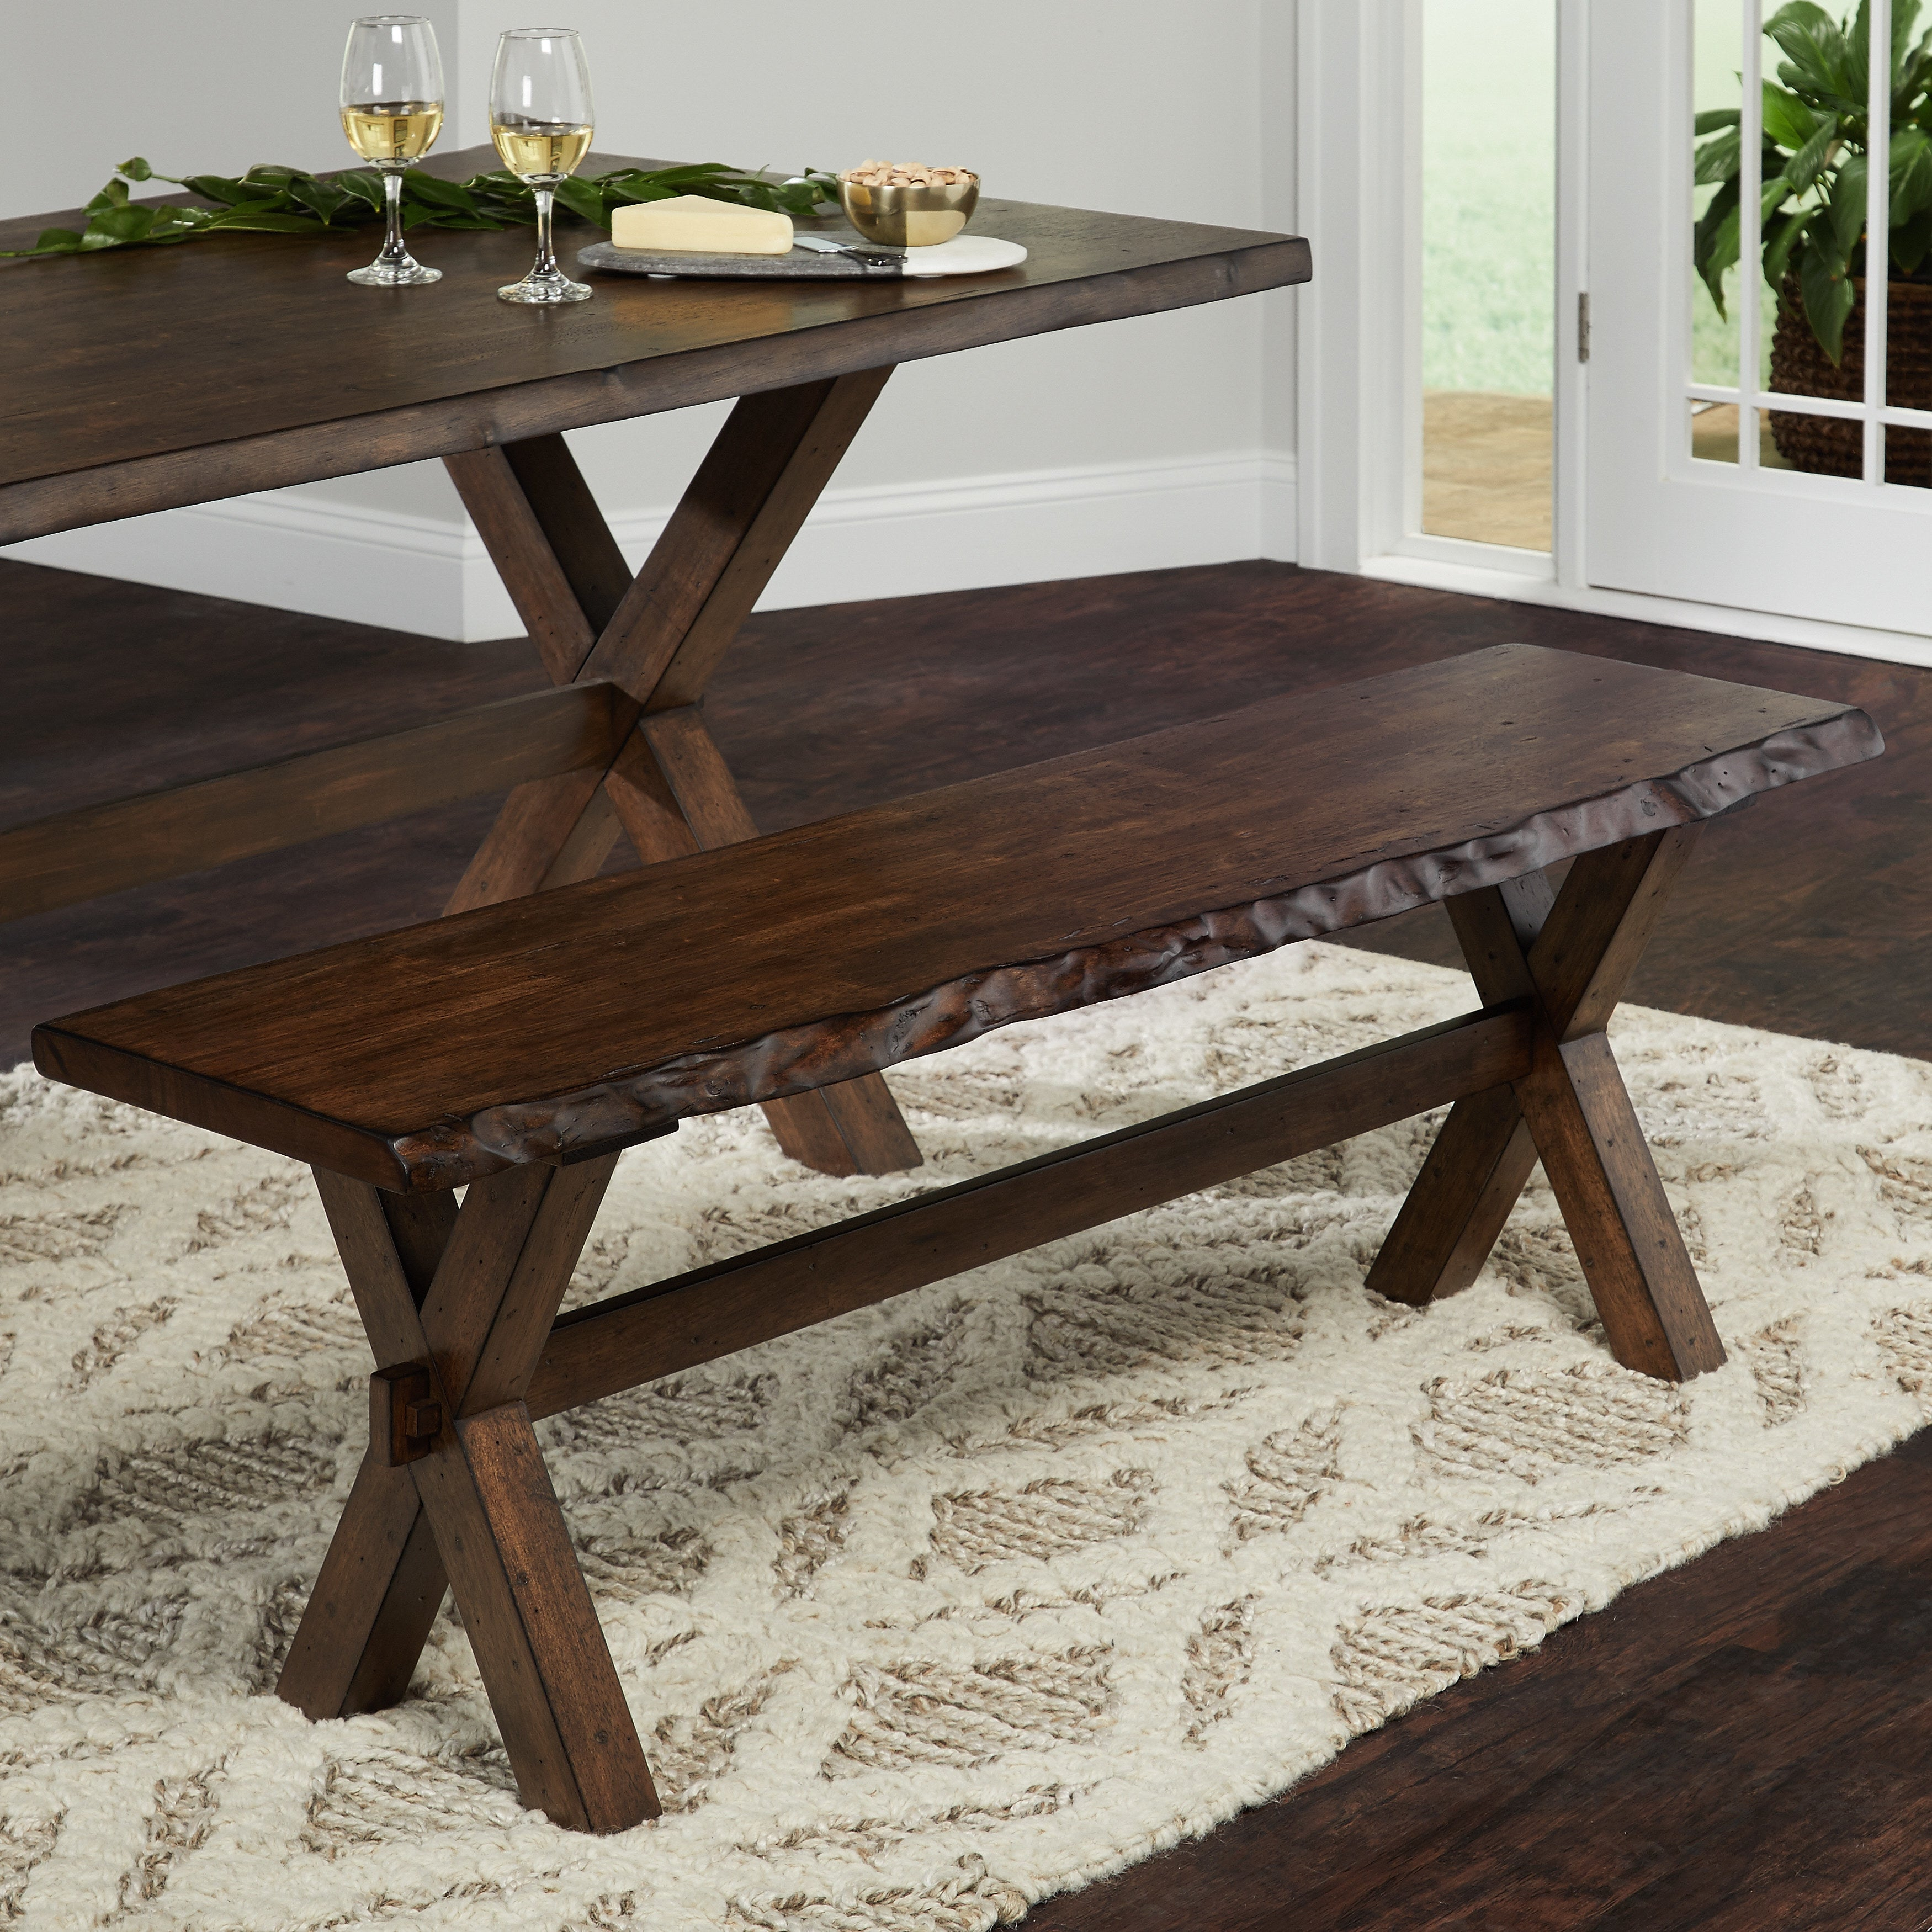 Simple Living Mandeville Live Edge Solid Wood Bench & Buy Benches Kitchen u0026 Dining Room Chairs Online at Overstock.com ...